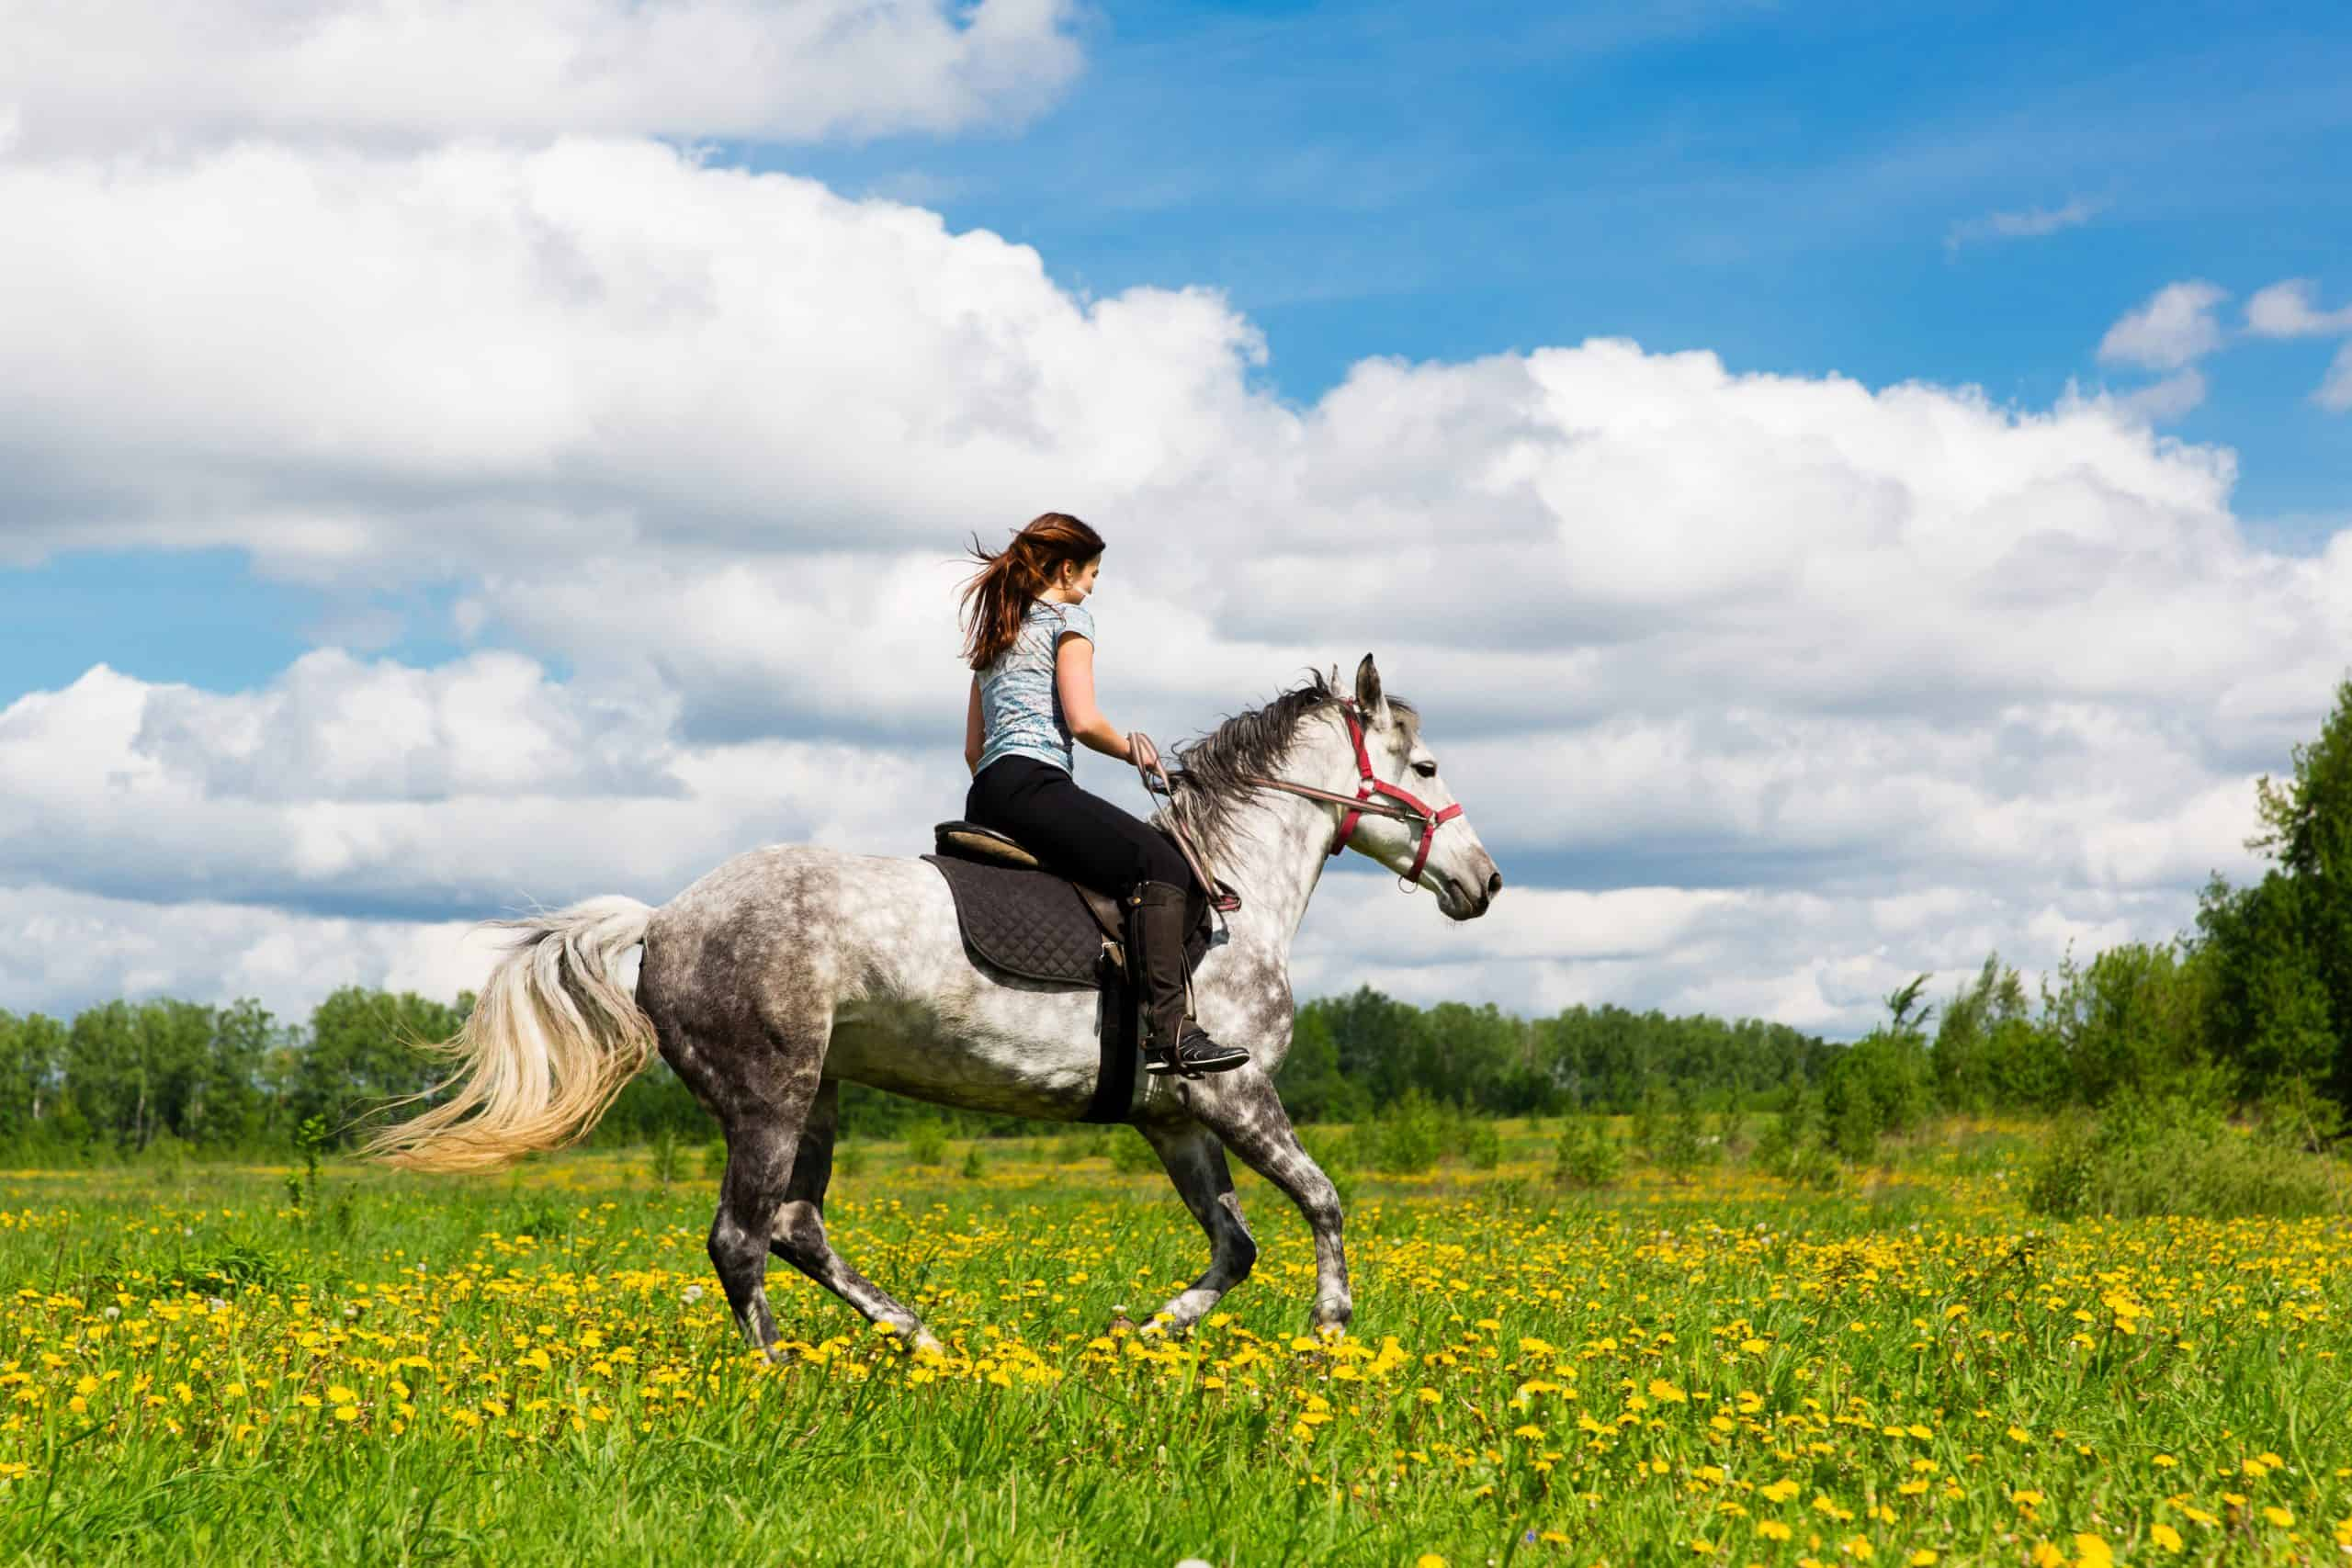 Woman riding on grey horse in the field